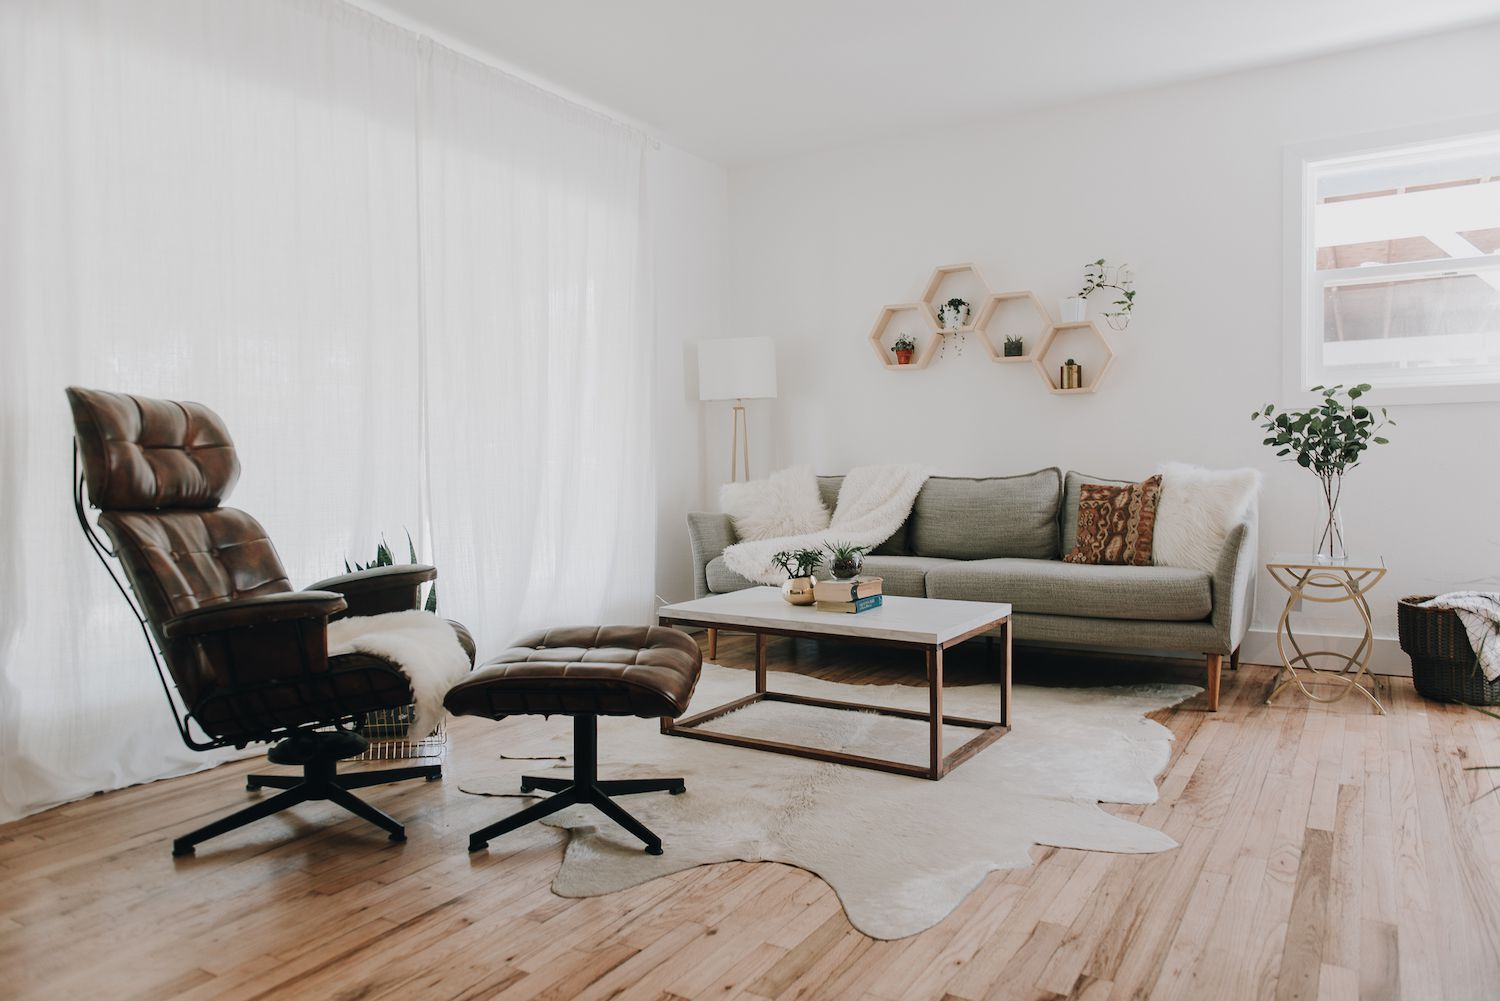 Living room with shelving unit